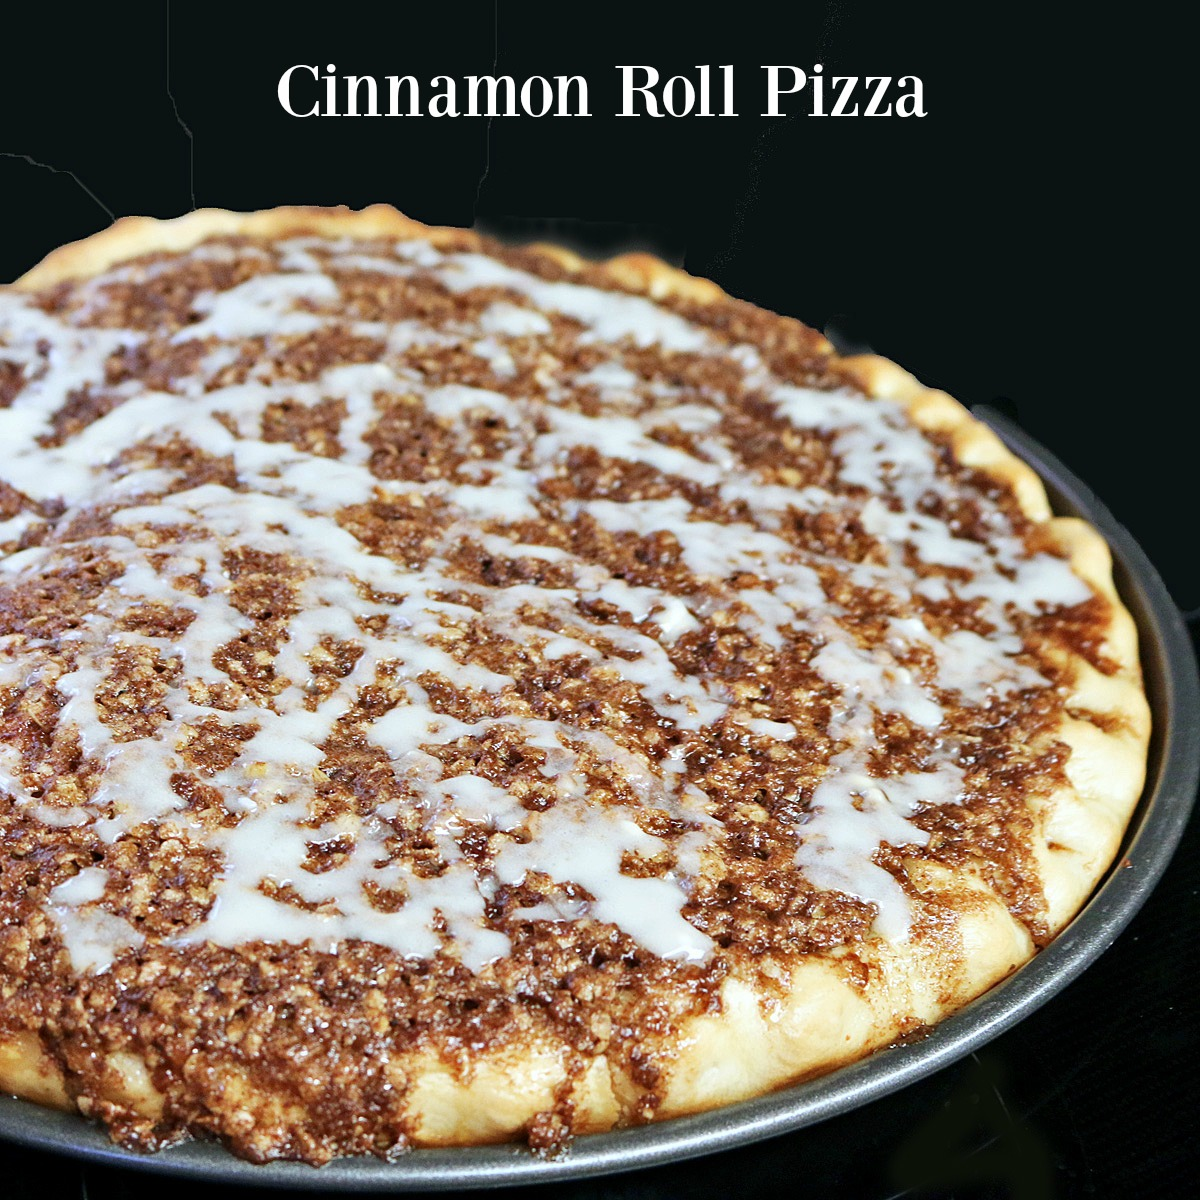 Cinnamon Roll Pizza #SundaySupper